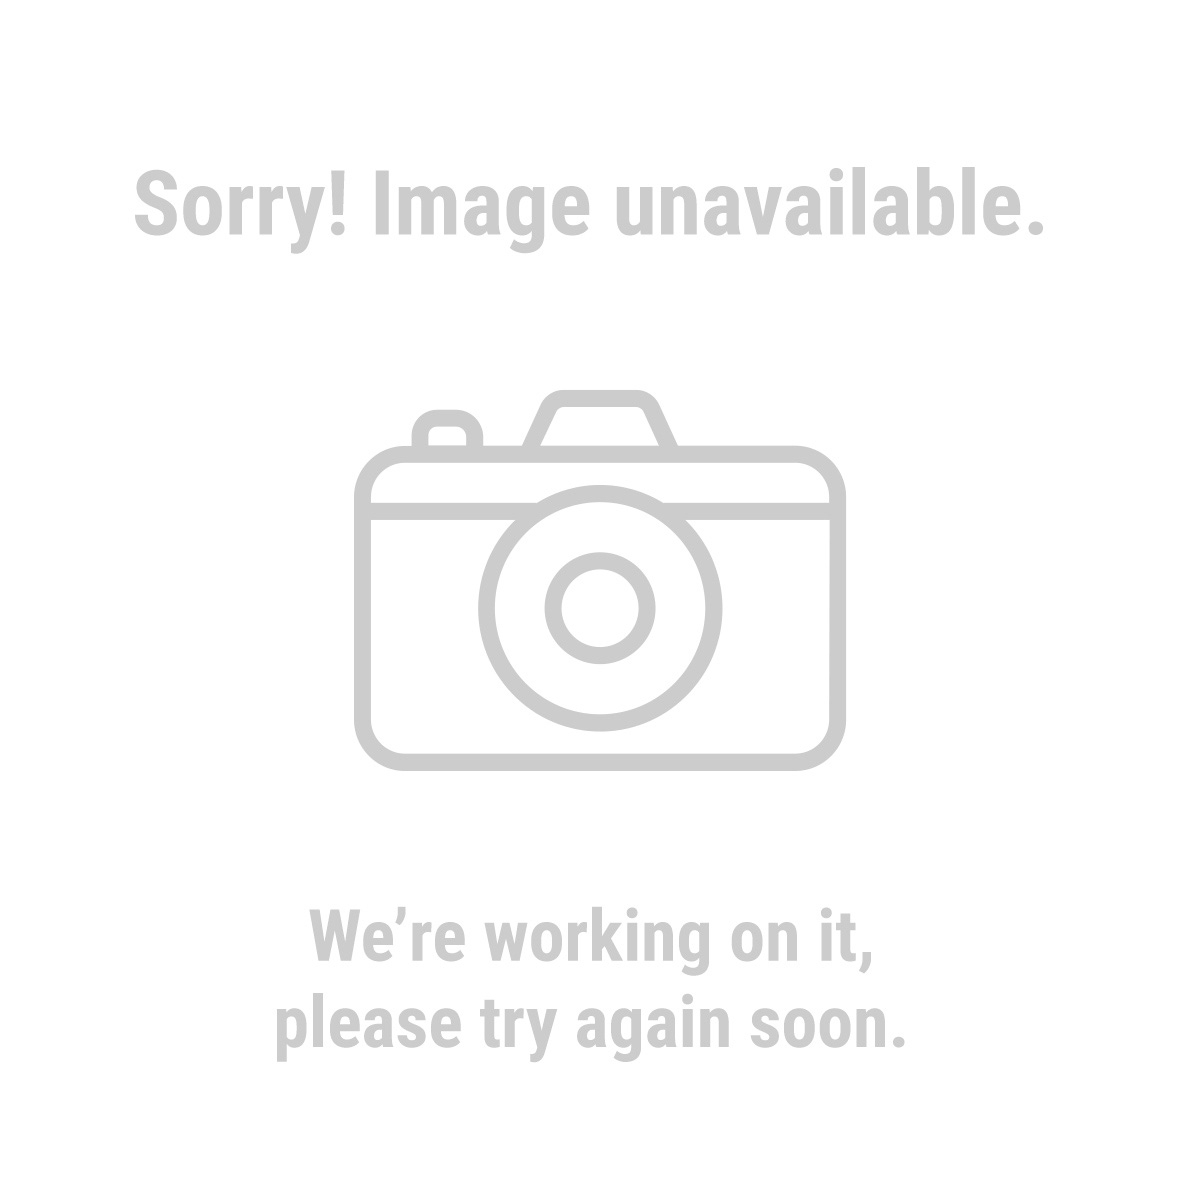 "HFT 66462 5 Rolls 3/4"" x 12 ft. Color Coded Electrical Tape"